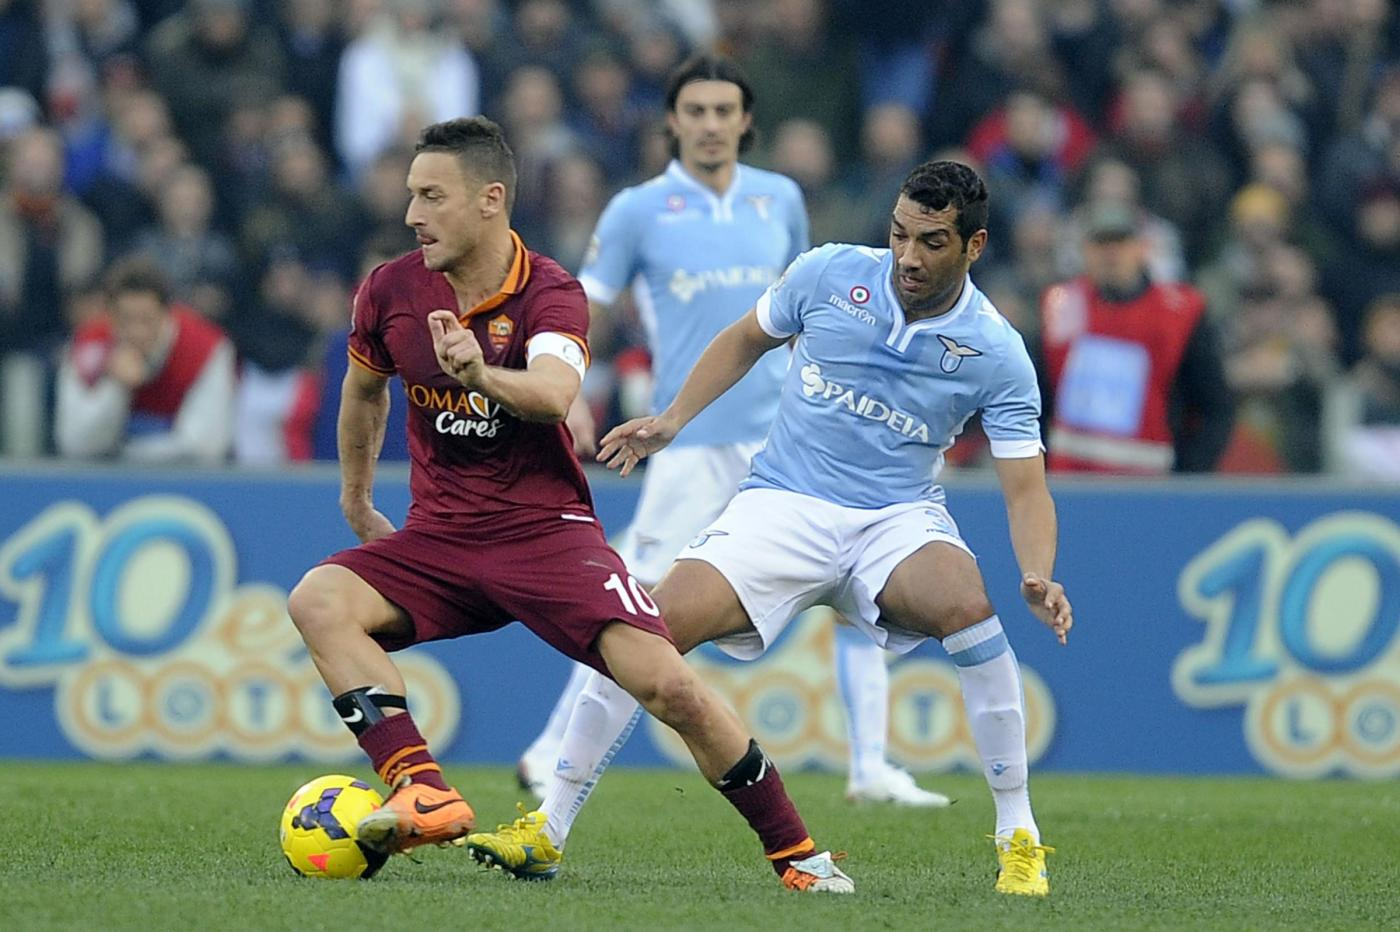 Roma vs Lazio 2-2 all'ultimo respiro al derby